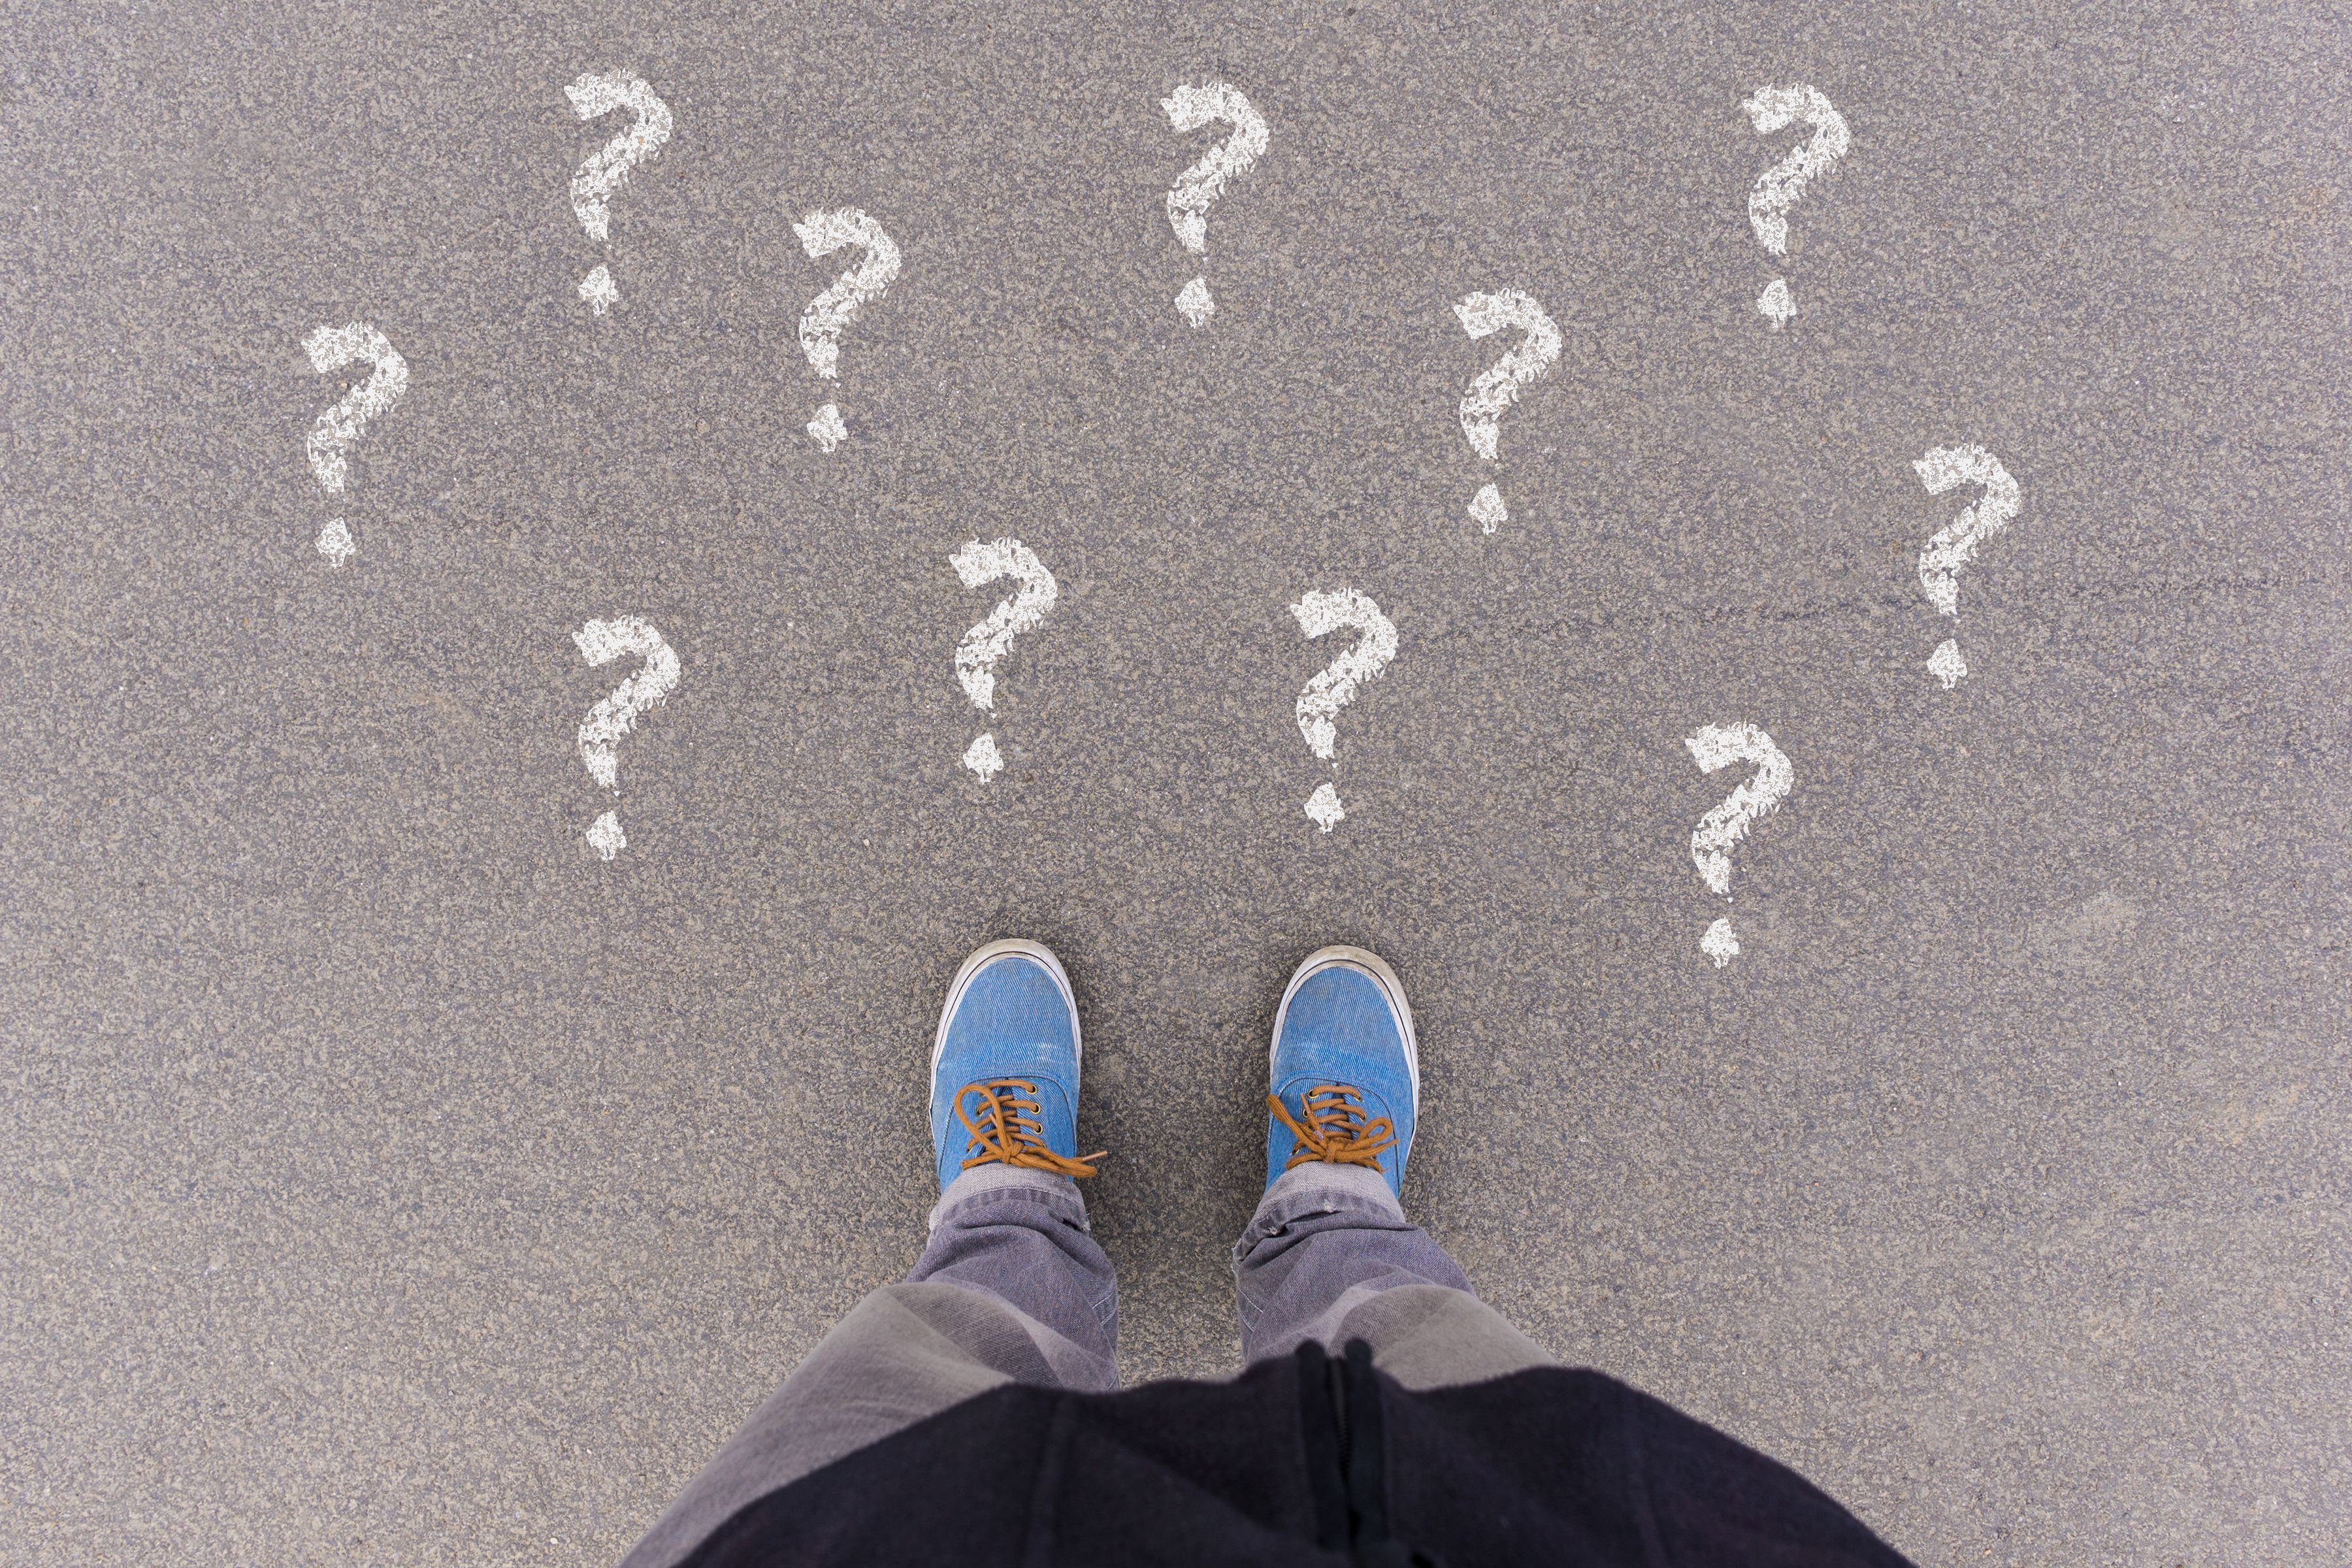 A picture of a pair of shoes on pavement with question marks around them.